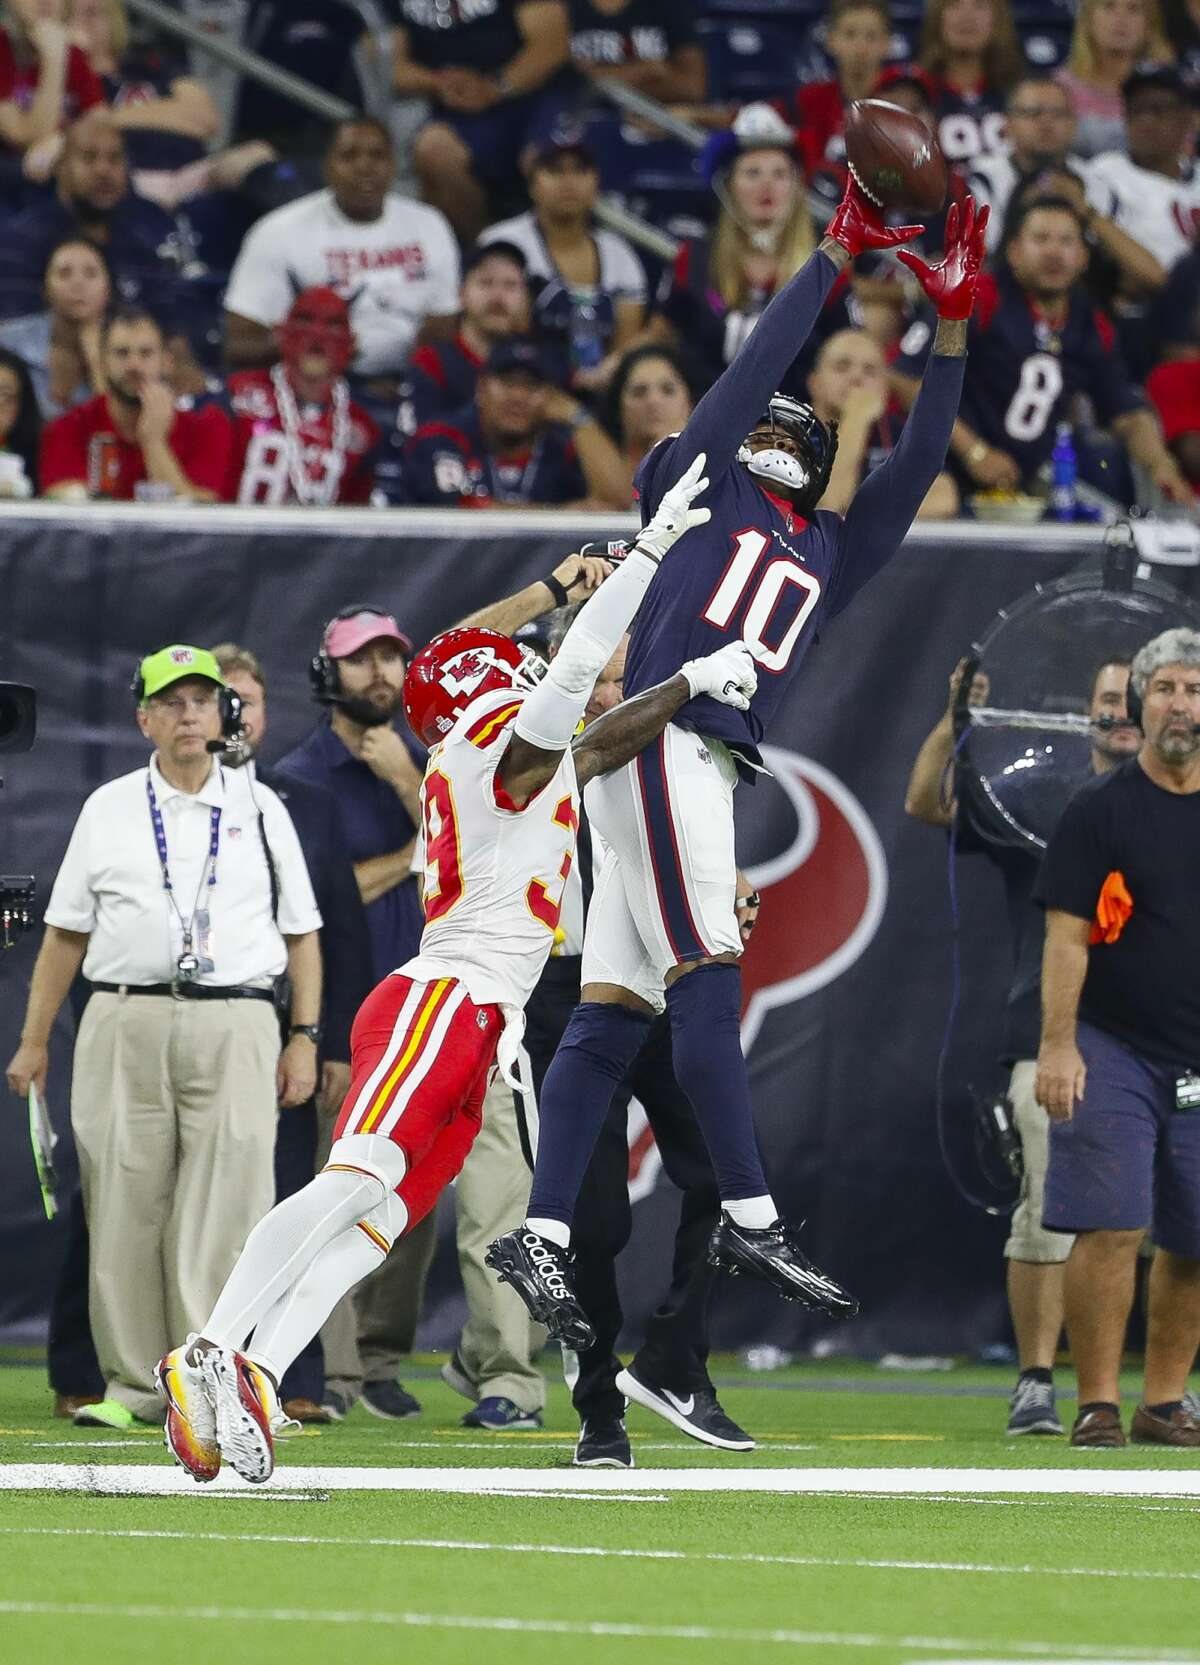 Houston Texans wide receiver DeAndre Hopkins (10) pulls down a pass that would be ruled incomplete because he stepped out of bounds during the fourth quarter of an NFL football game at NRG Stadium on Sunday, Oct. 8, 2017, in Houston. ( Brett Coomer / Houston Chronicle )